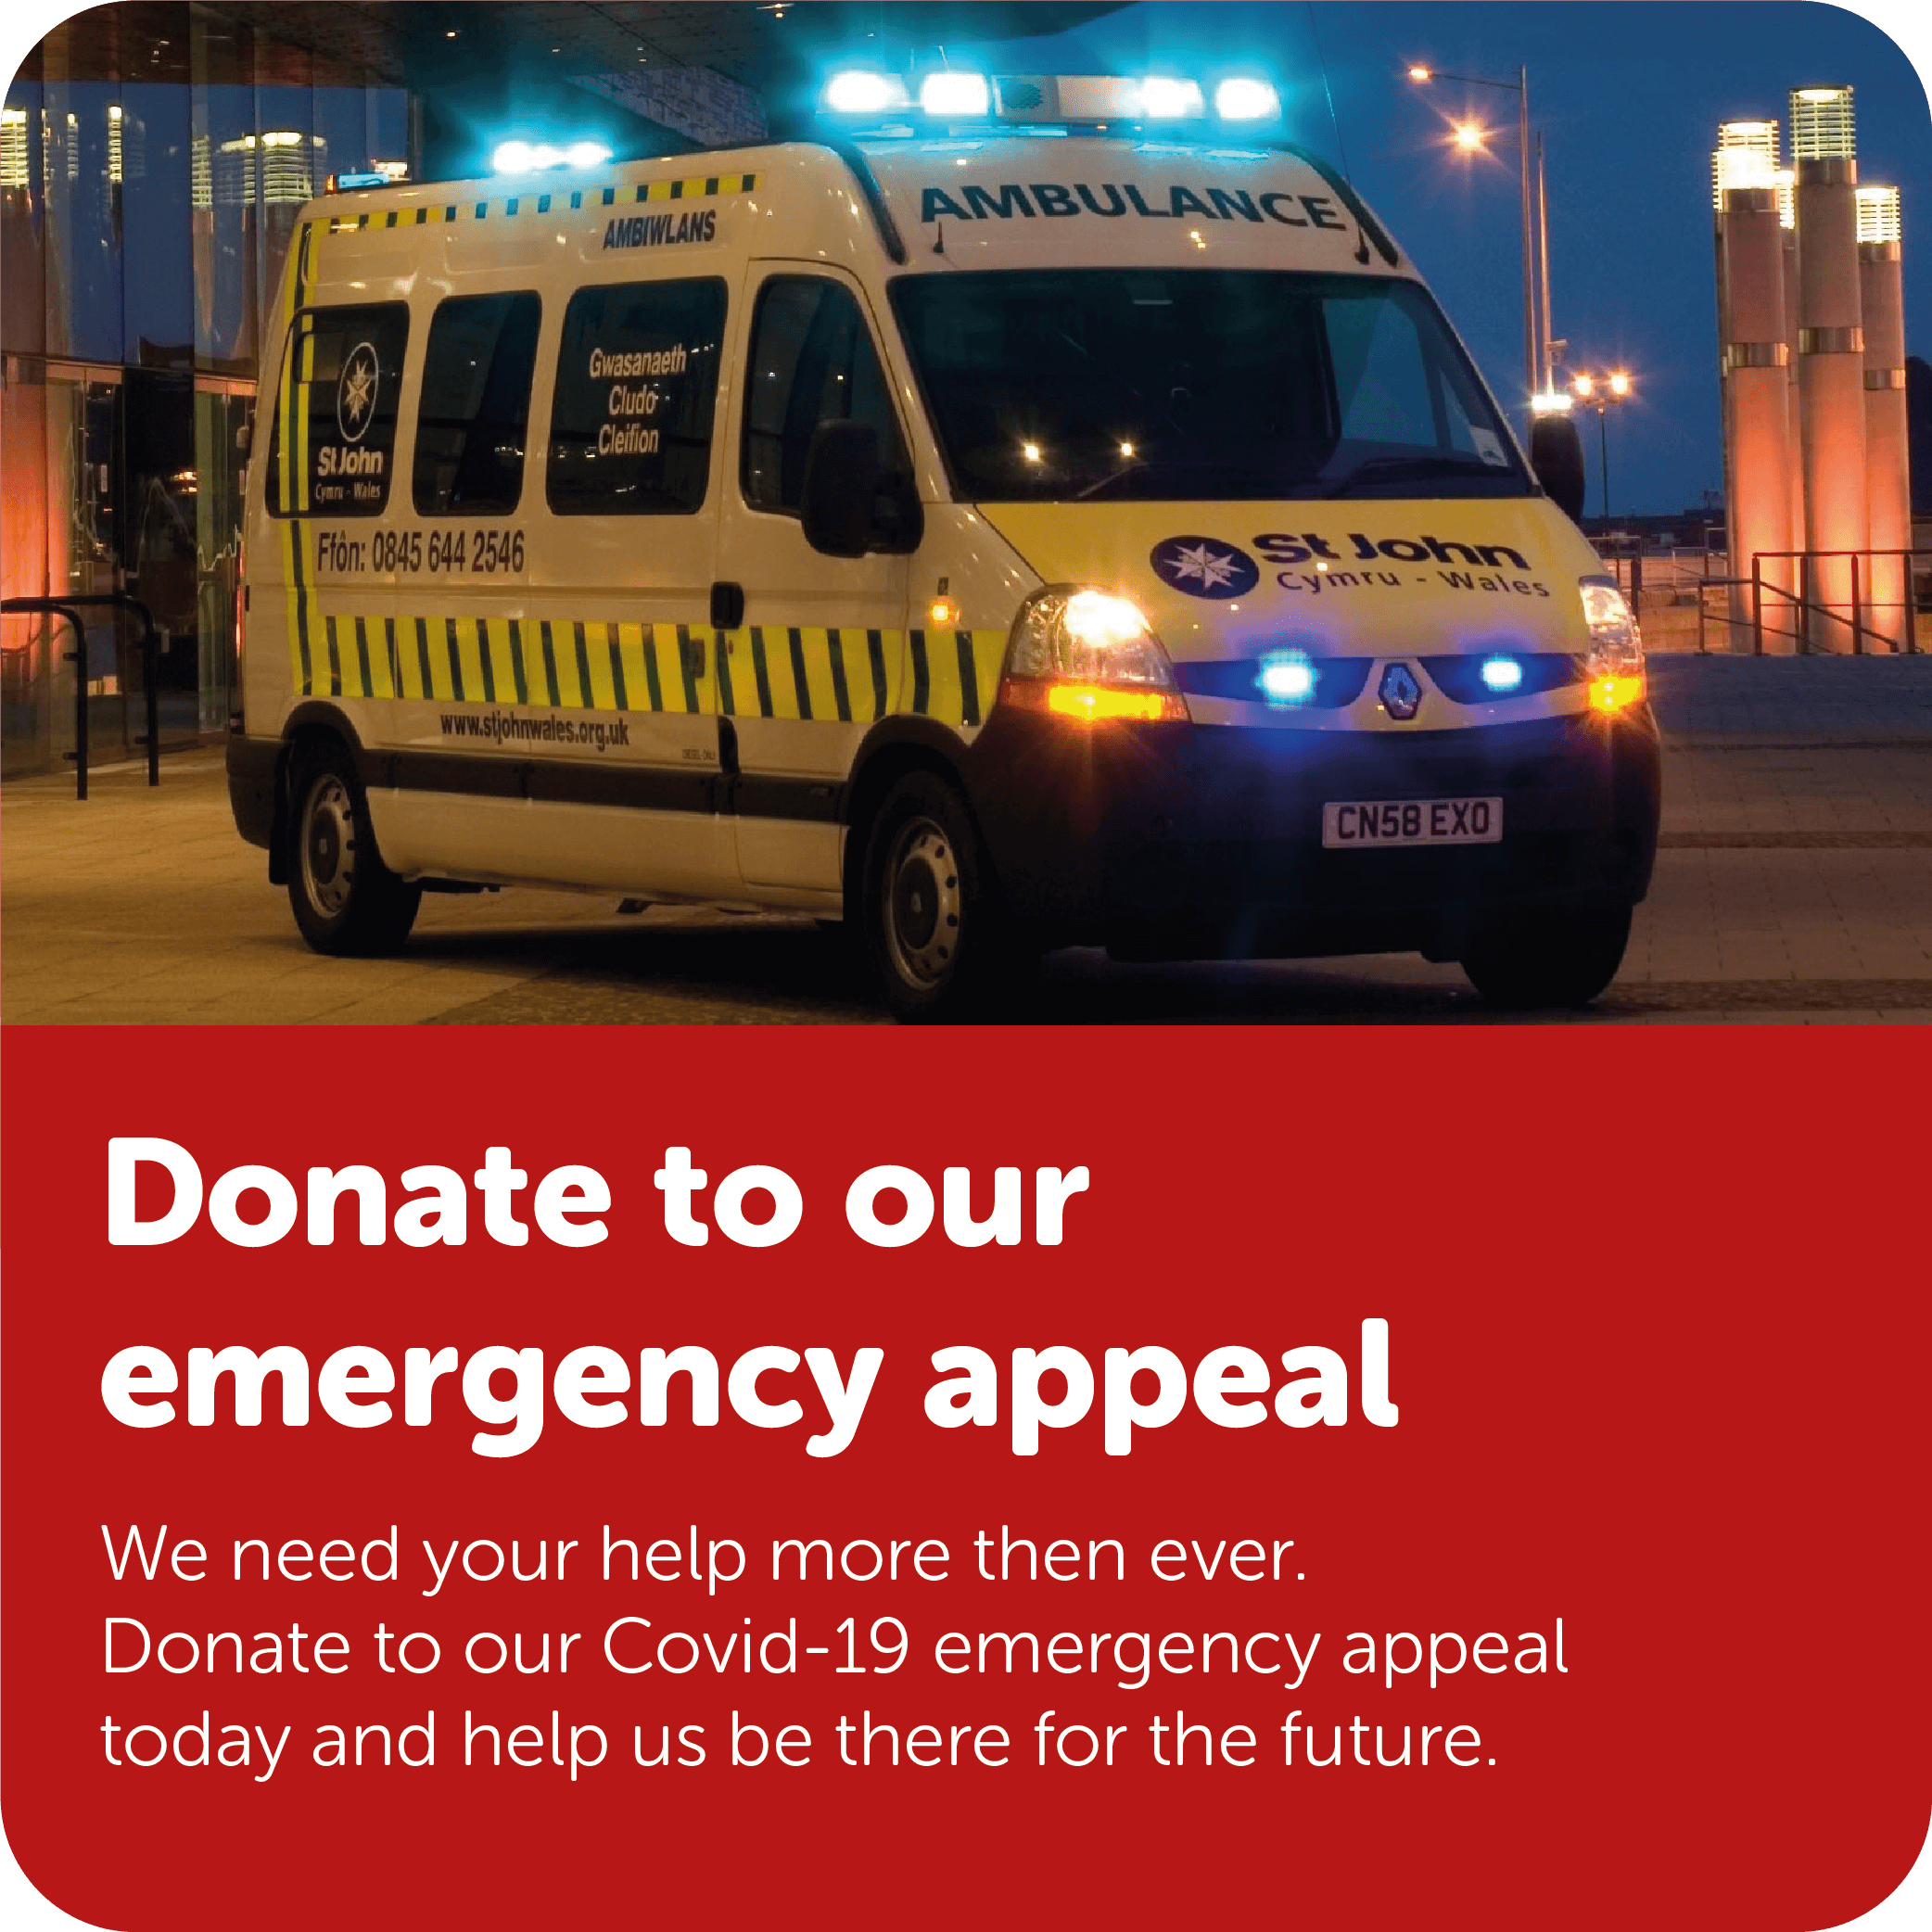 We need your help more than ever. Donate to our Covid-19 emergency appeal today and help us be there for the future.